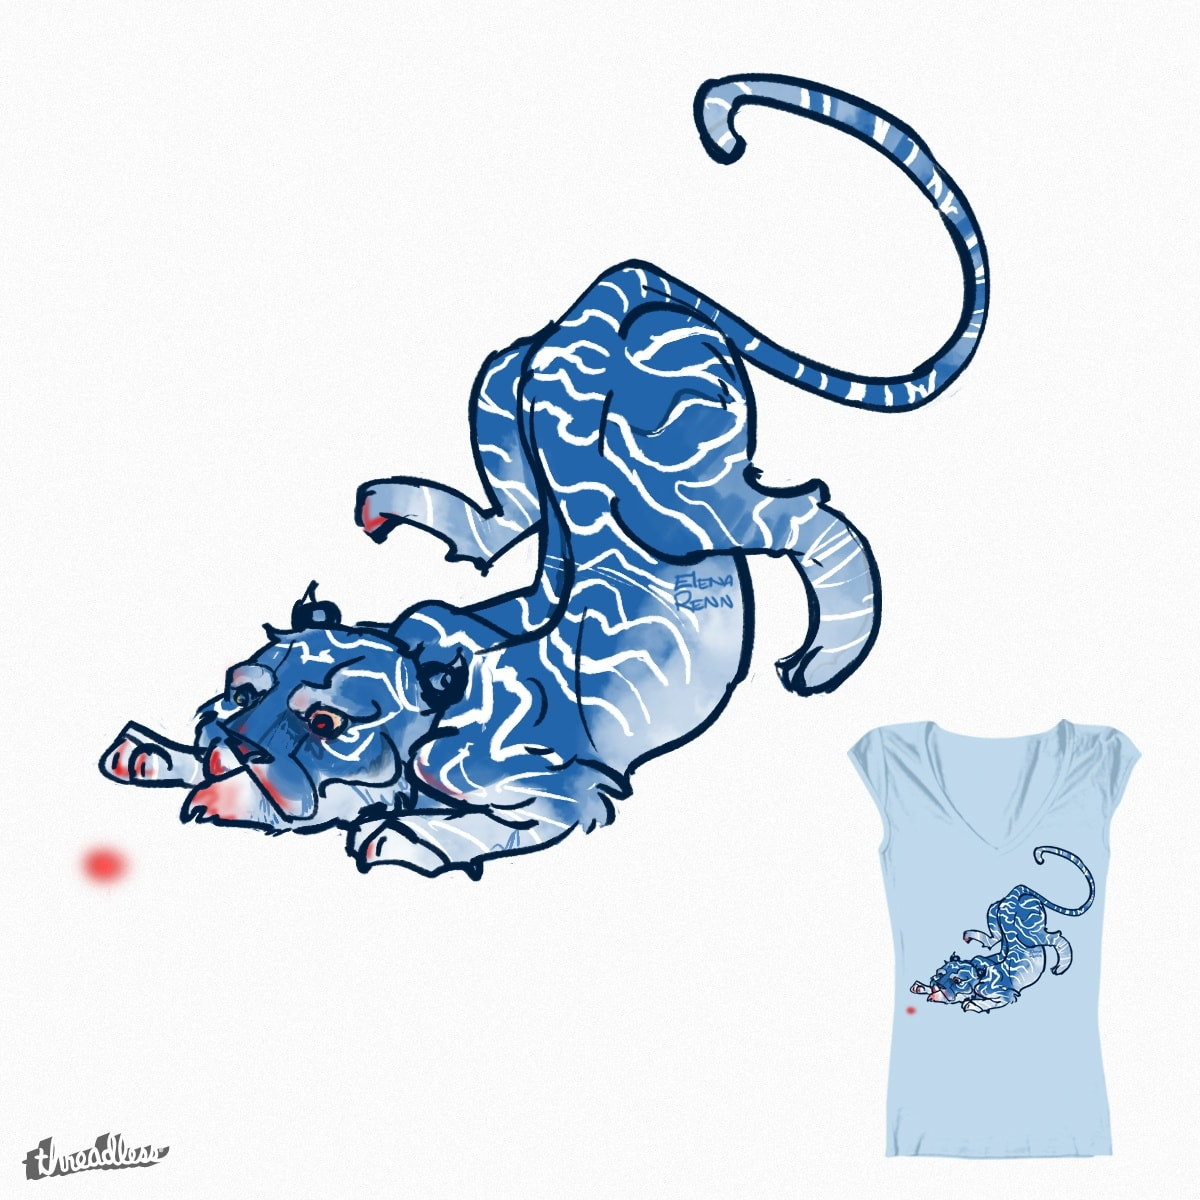 The Great Hunter by normalitea on Threadless